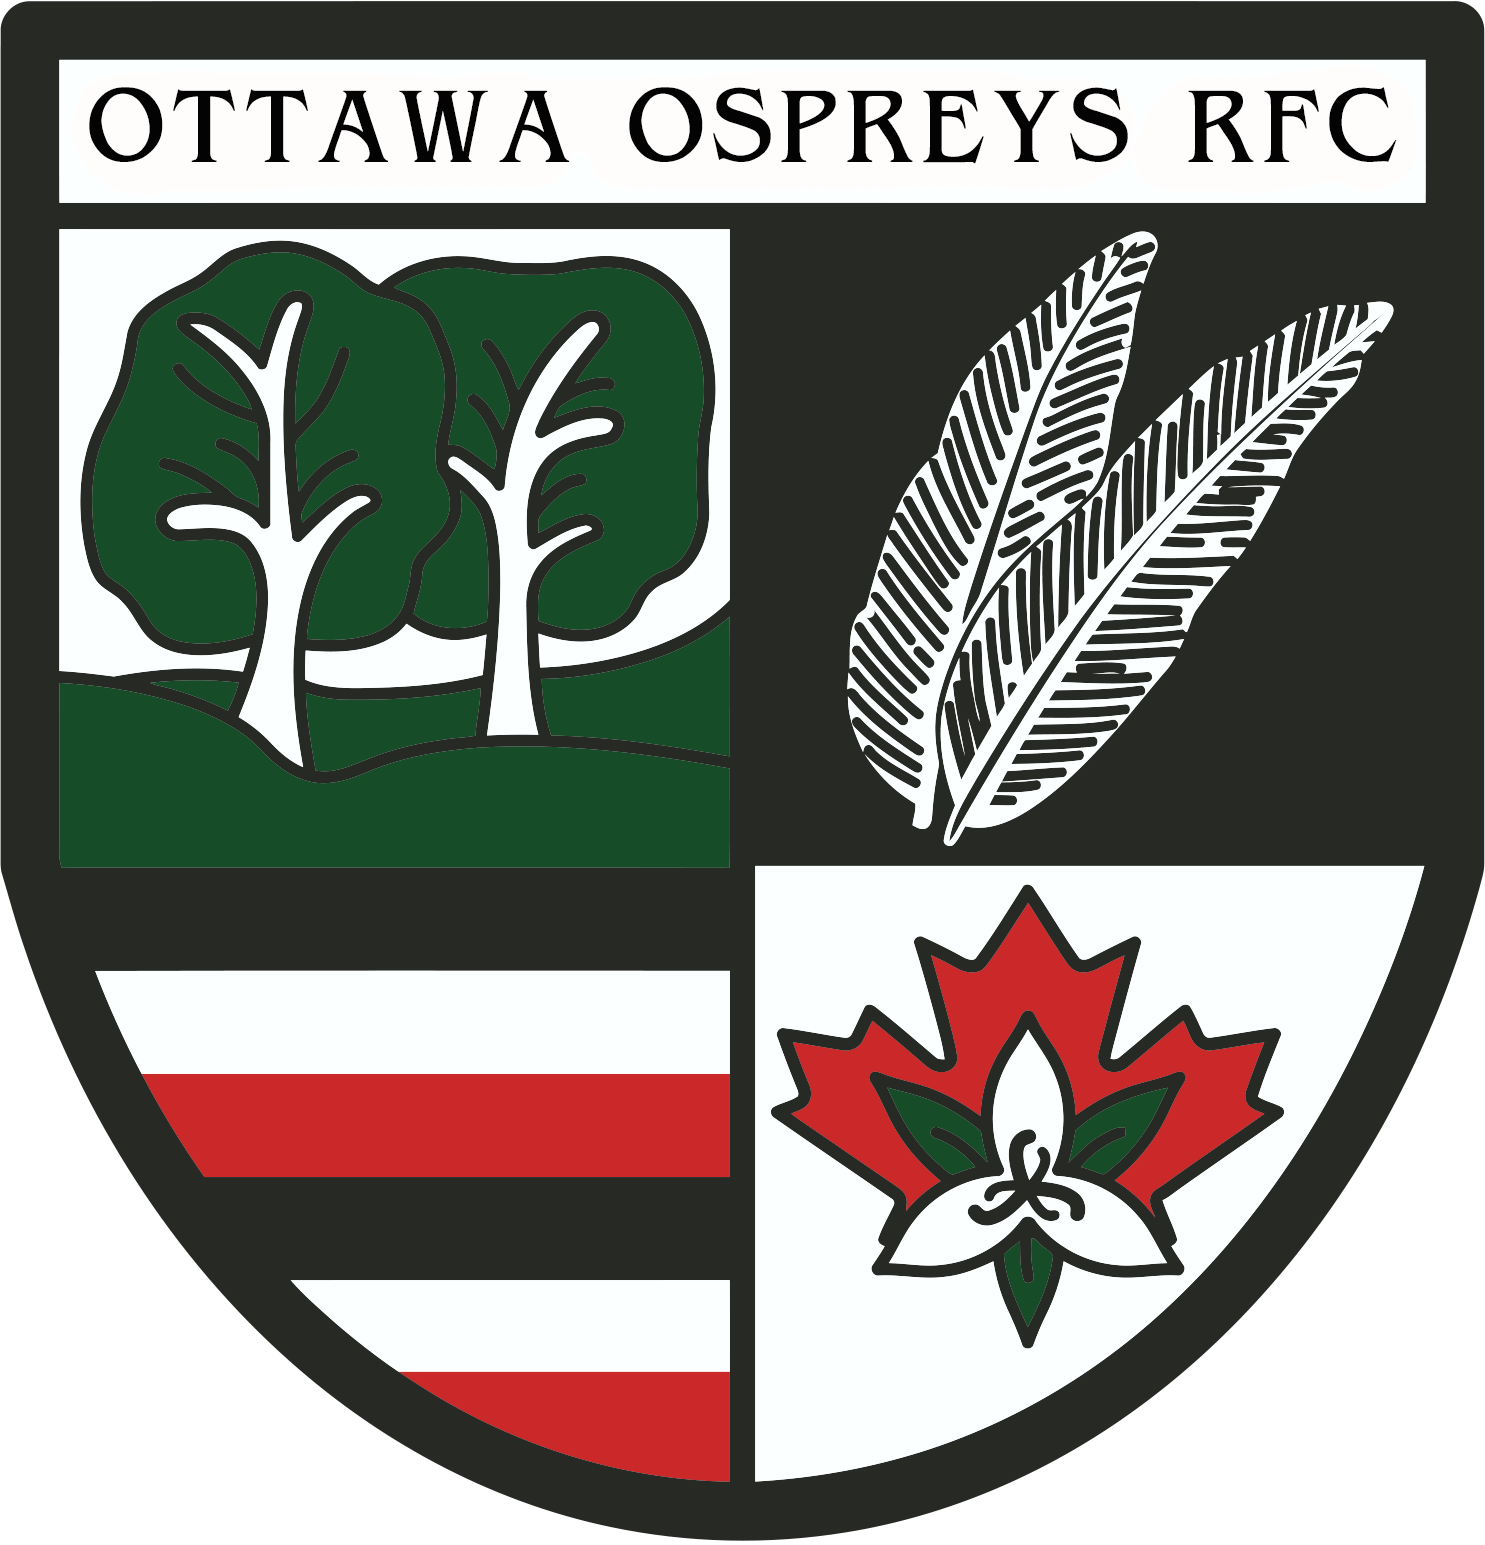 Ottawa Ospreys Rugby Football Club